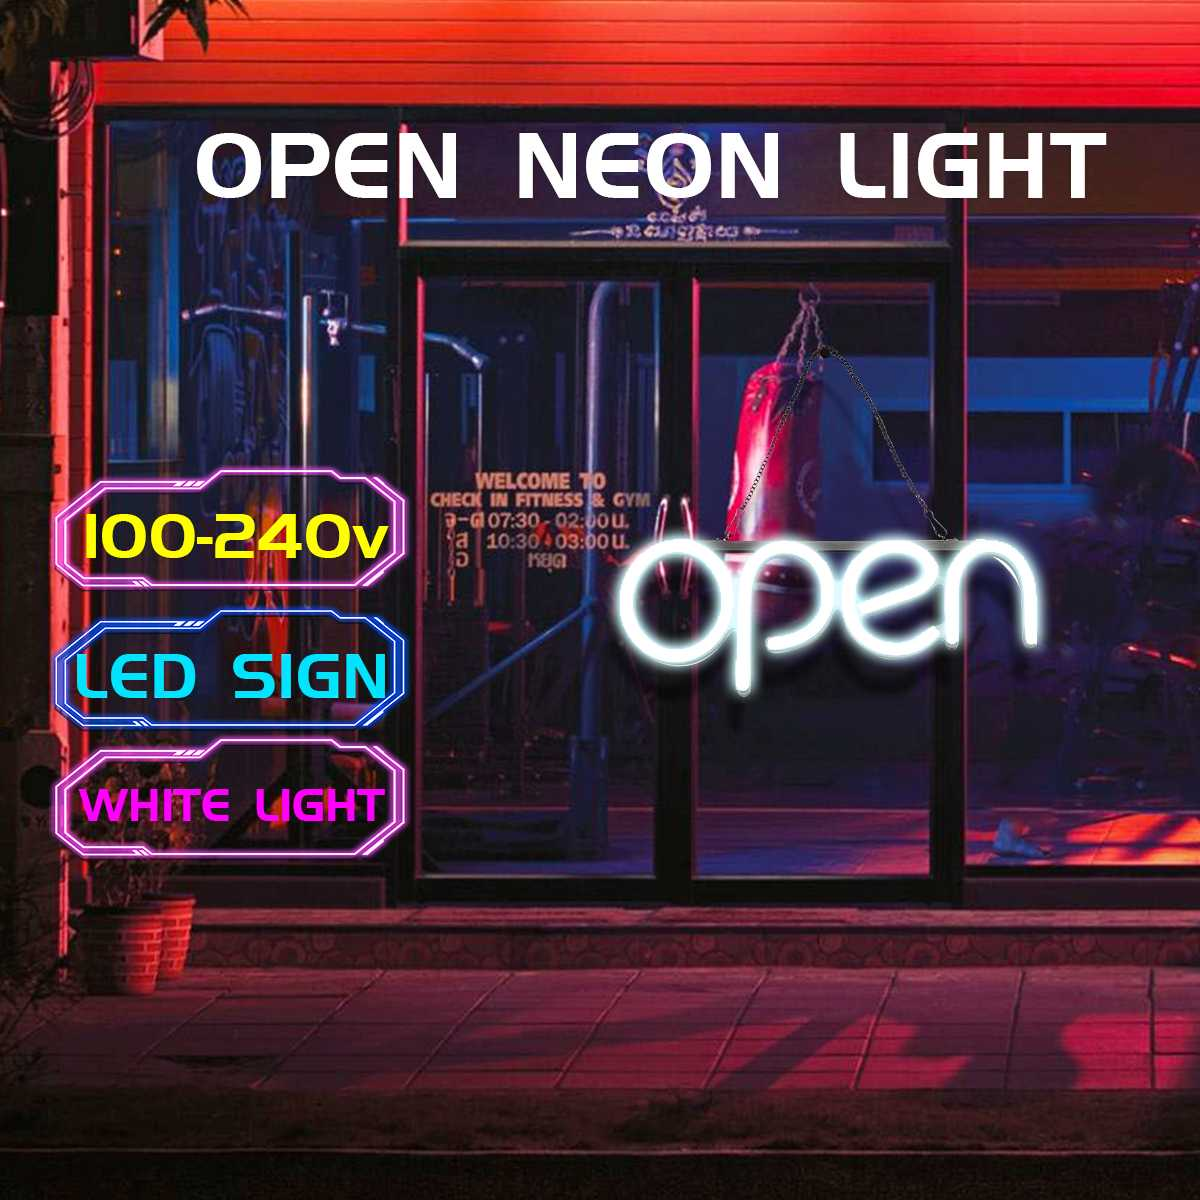 OPEN Neon Sign Light Bar Pub Display Party Neon Bulb Home Room Wall Decoration 100-240V US Plug Advertising Commercial Lighting